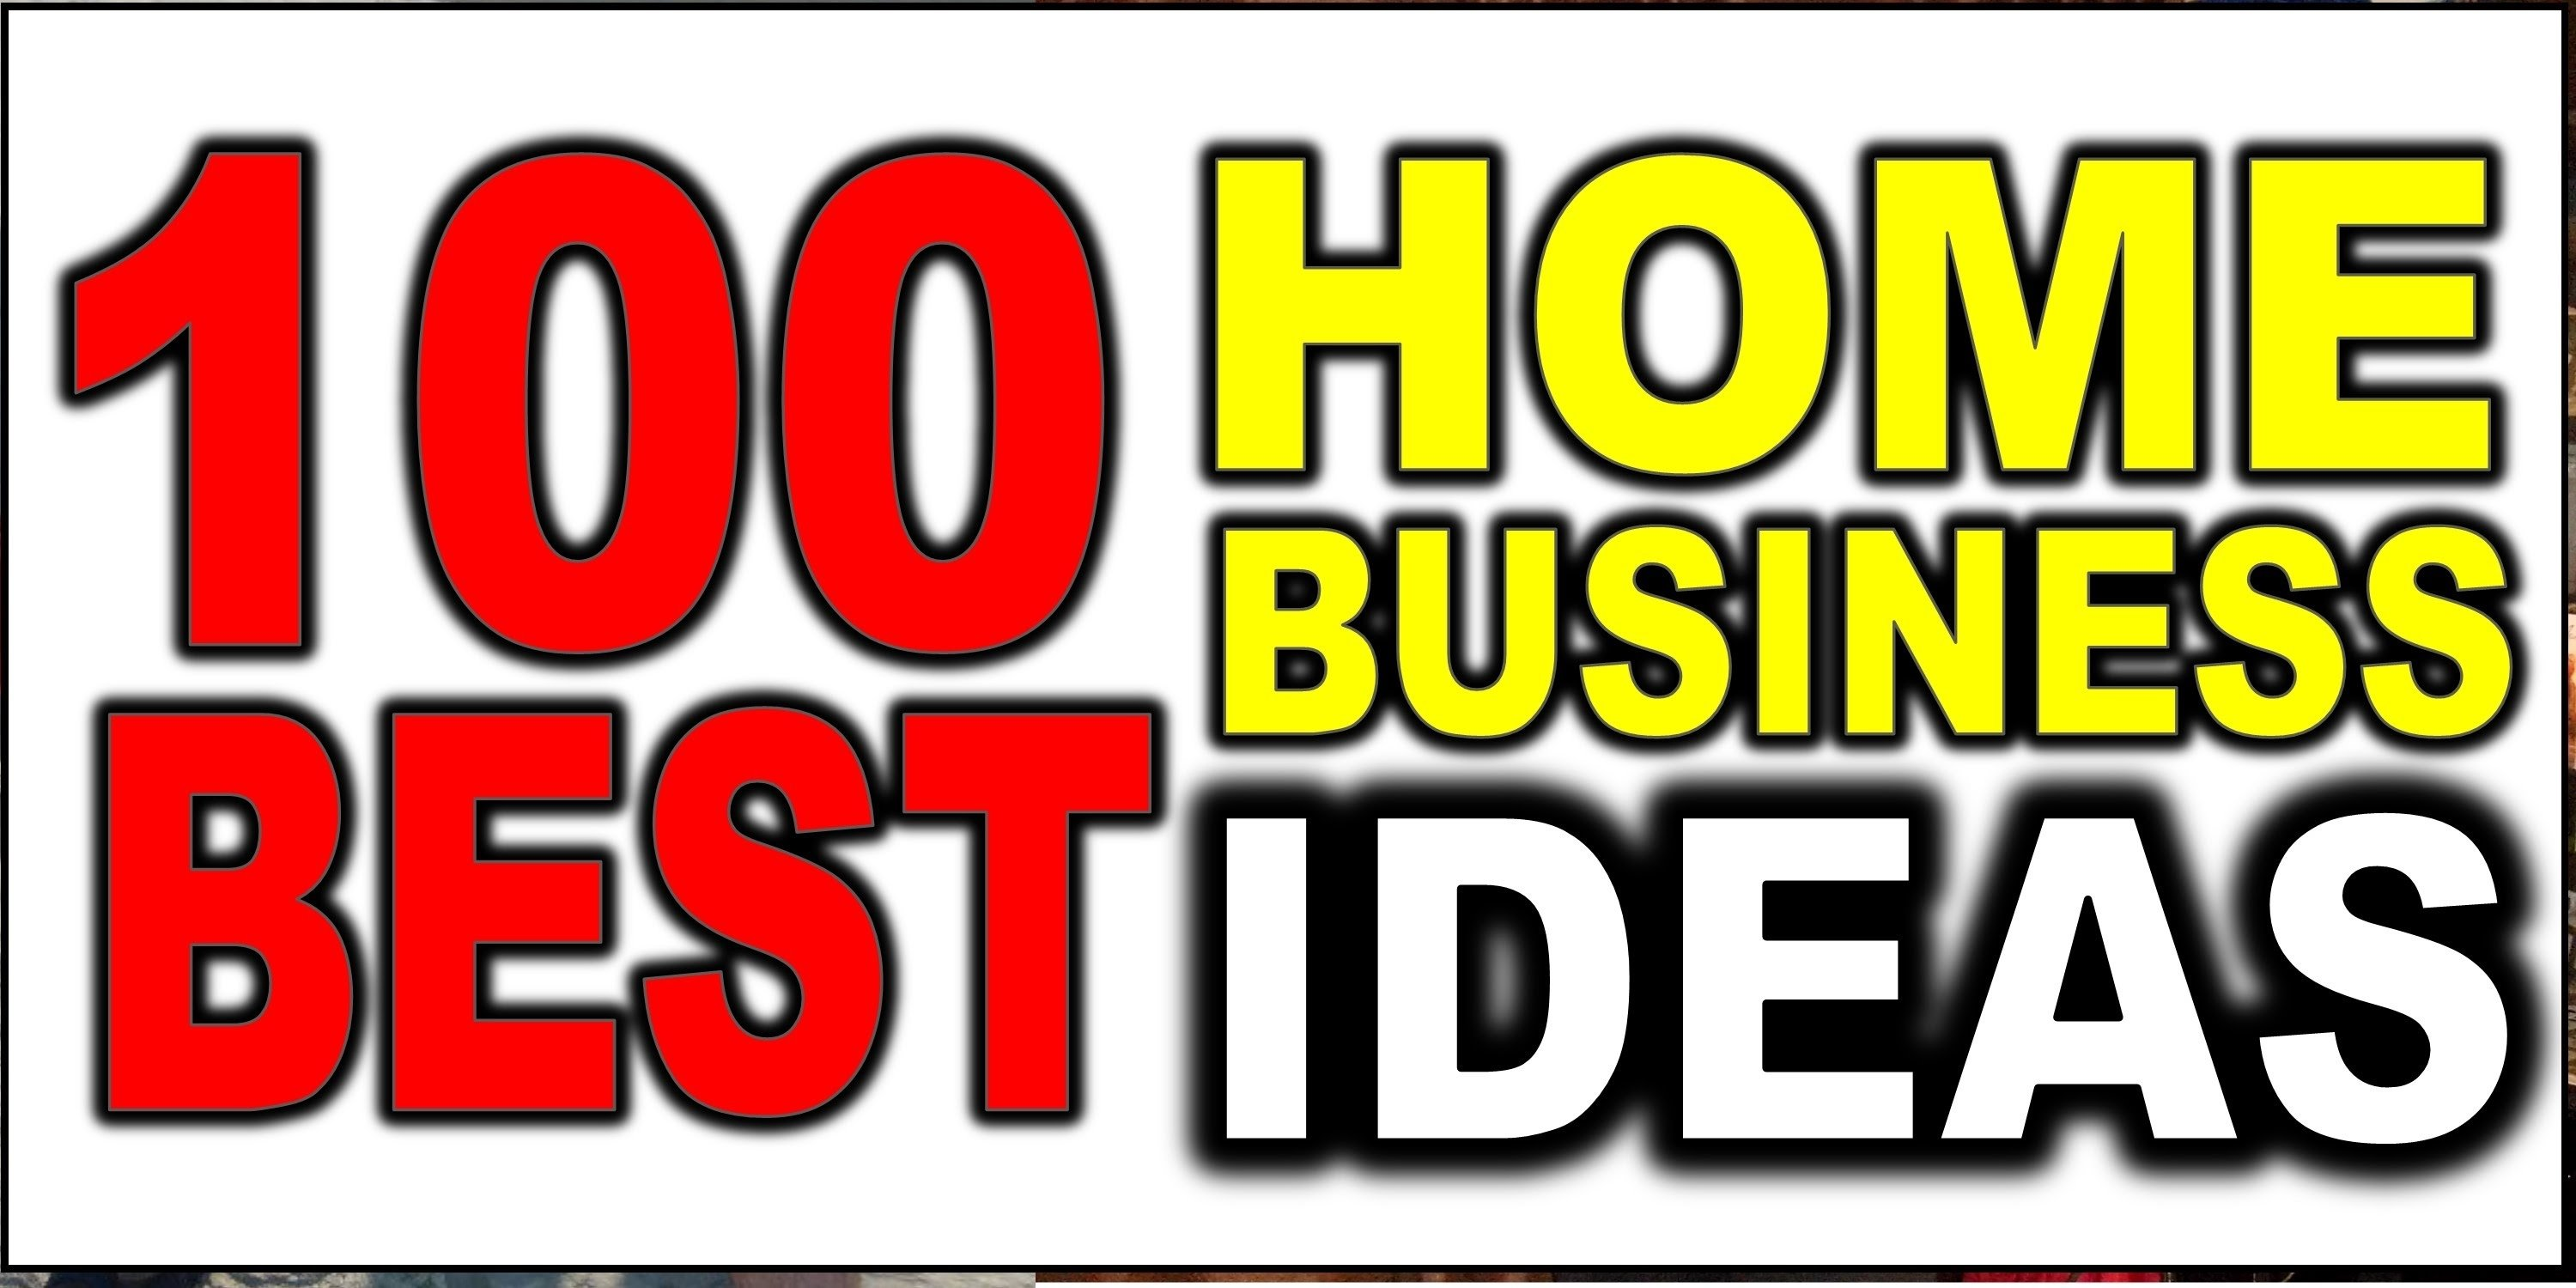 10 most popular easy to start business ideas